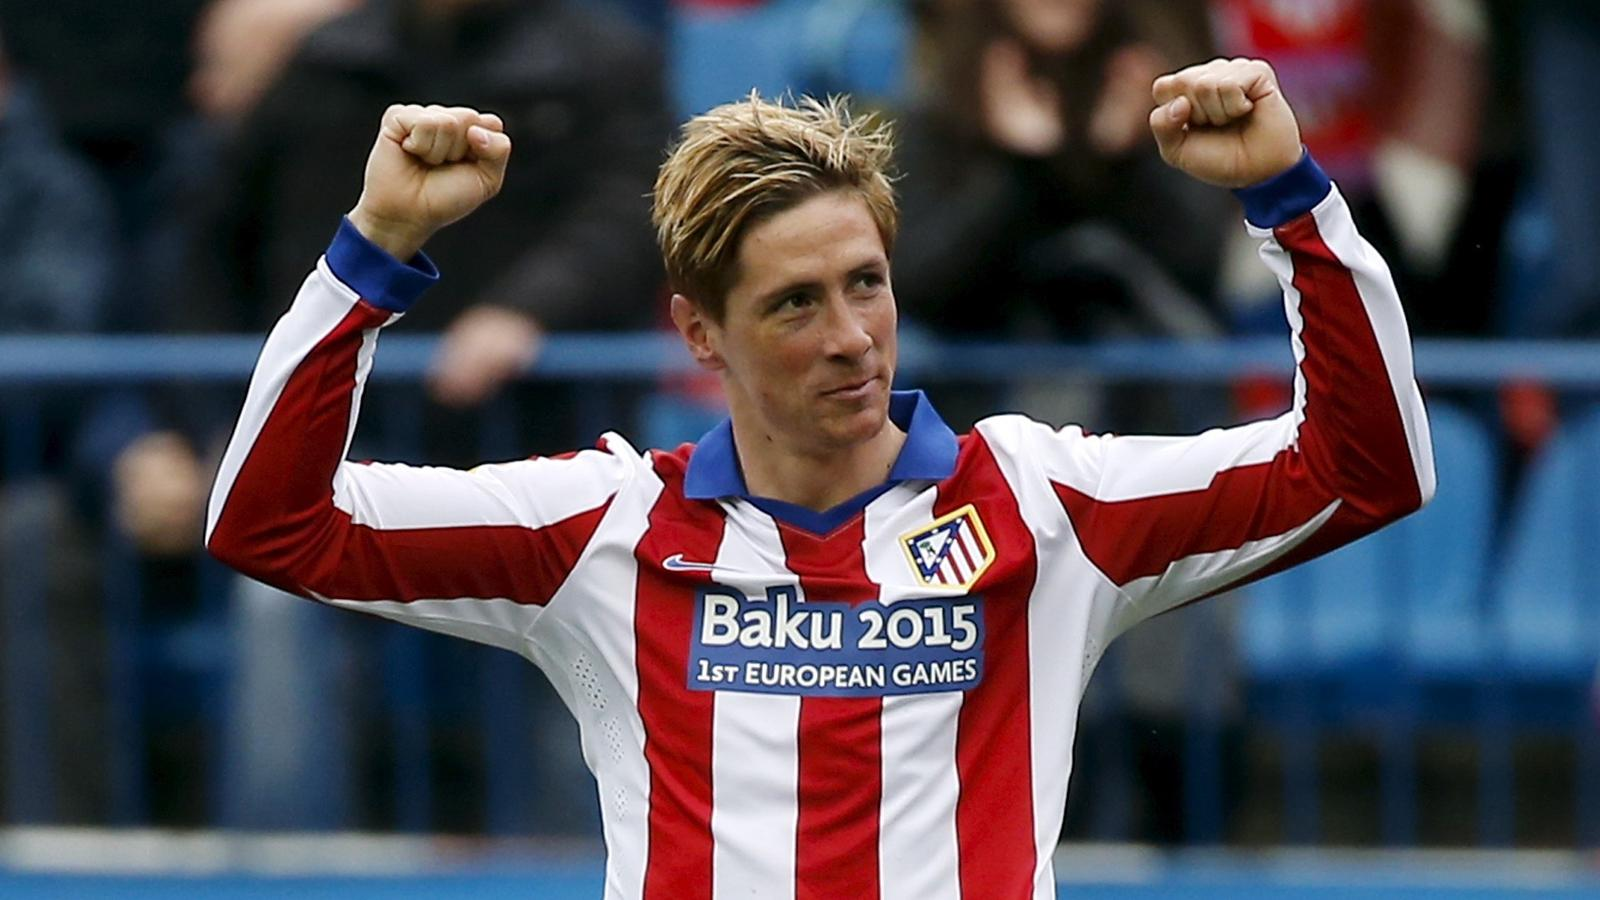 Can Fernando Torres clinch amazing treble of Liga title Champions